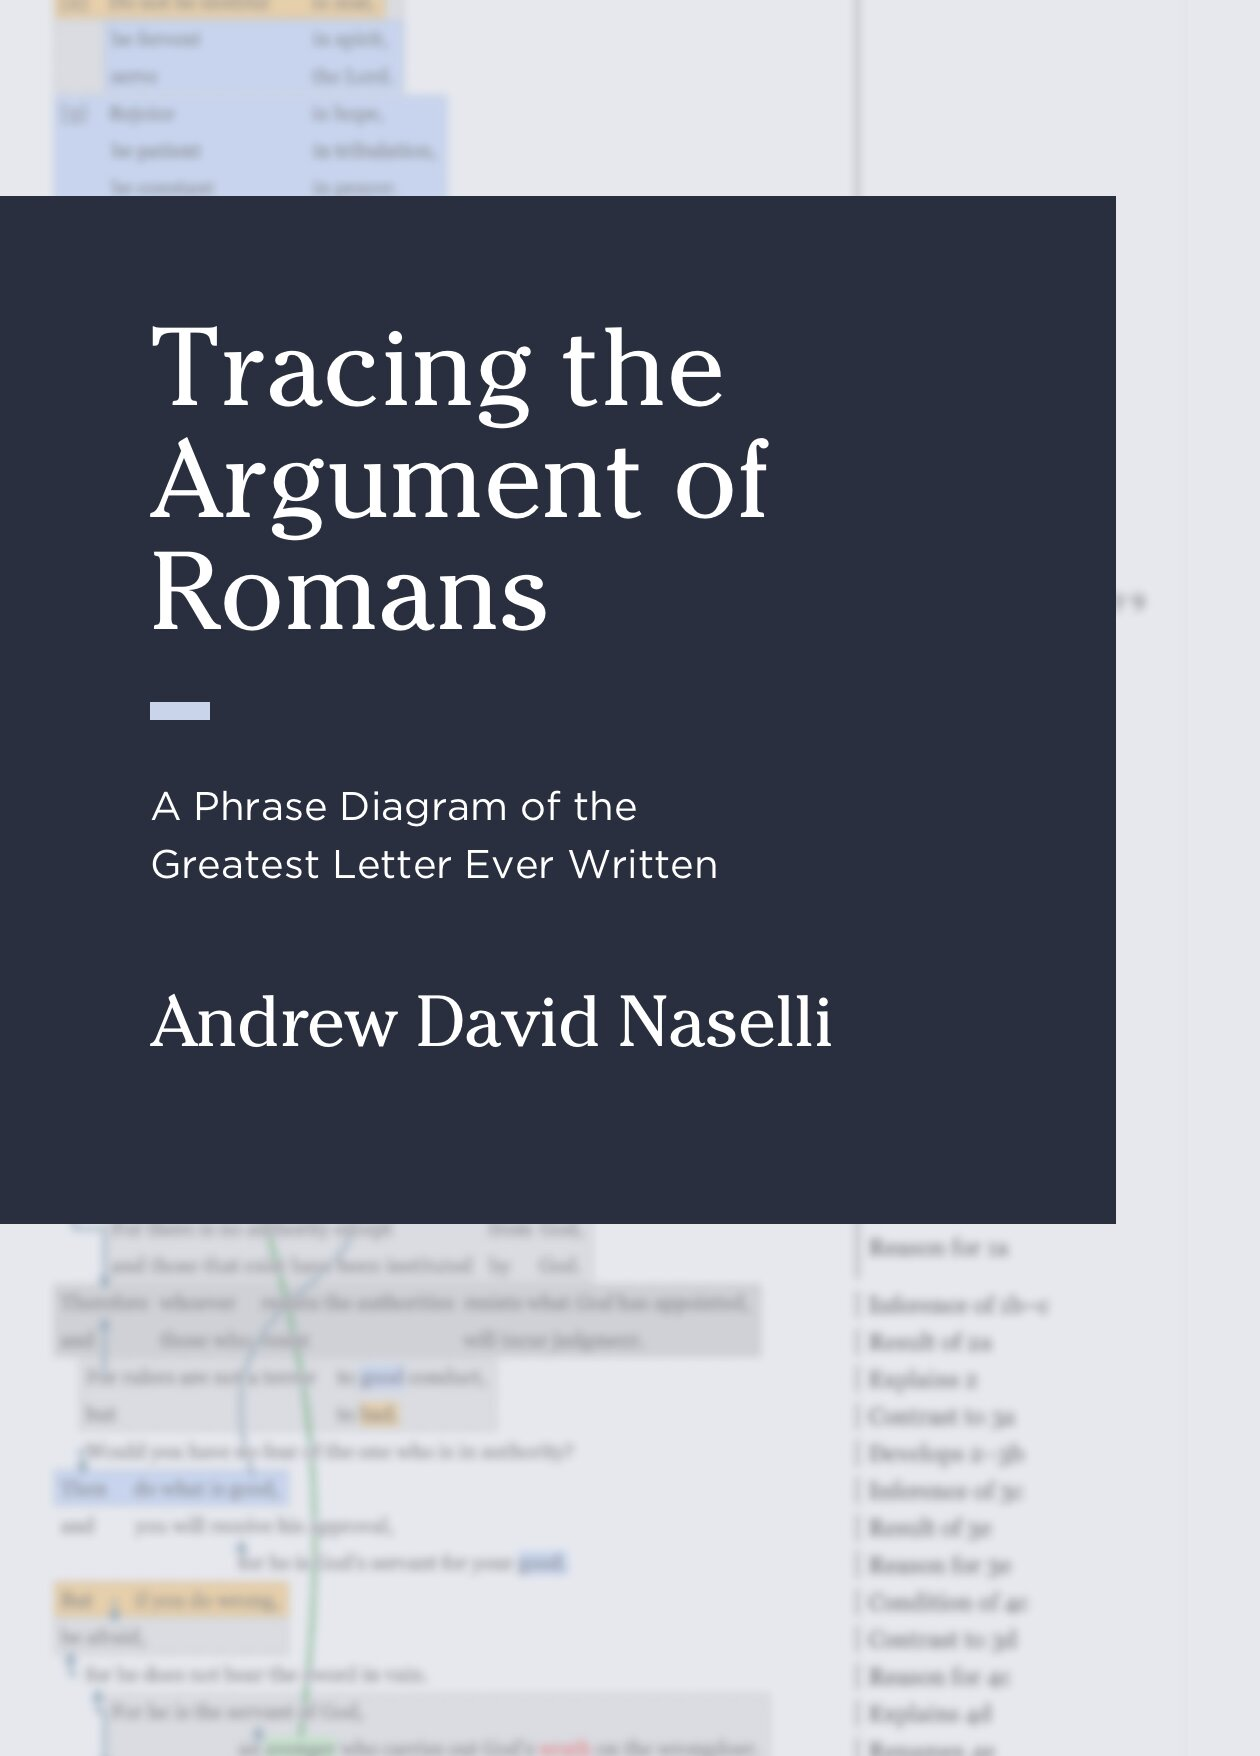 Tracing the Argument of Romans: A Phrase Diagram of the Greatest Letter Ever Written